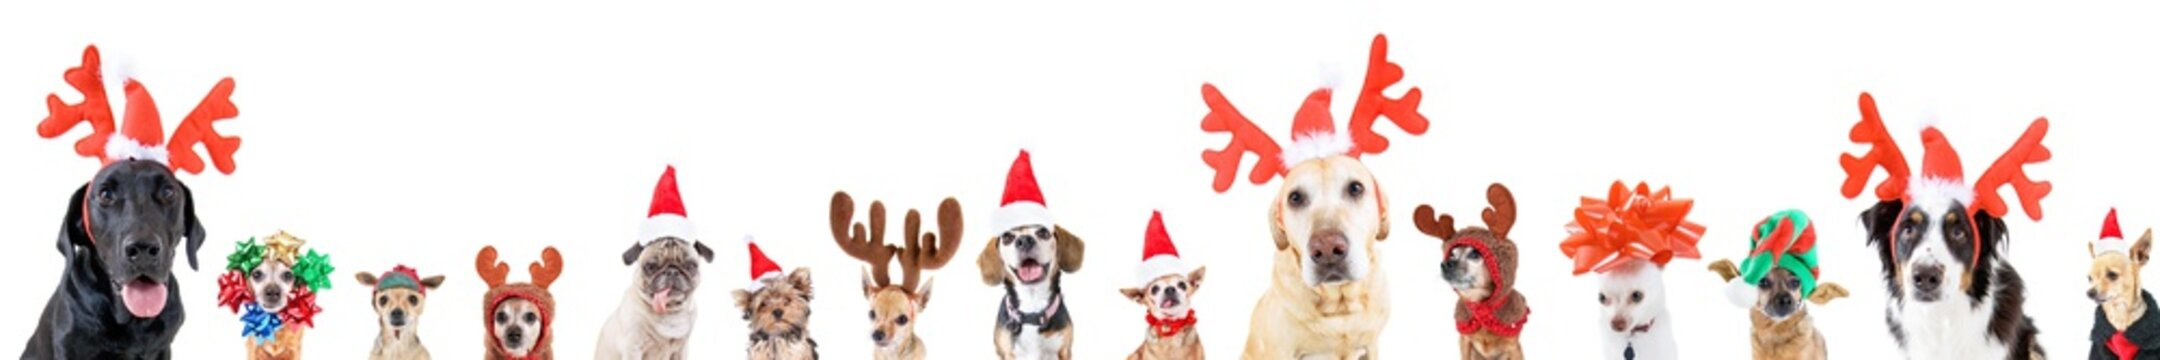 group of various dog breeds with different christmas hats or costumes on an isolated white background